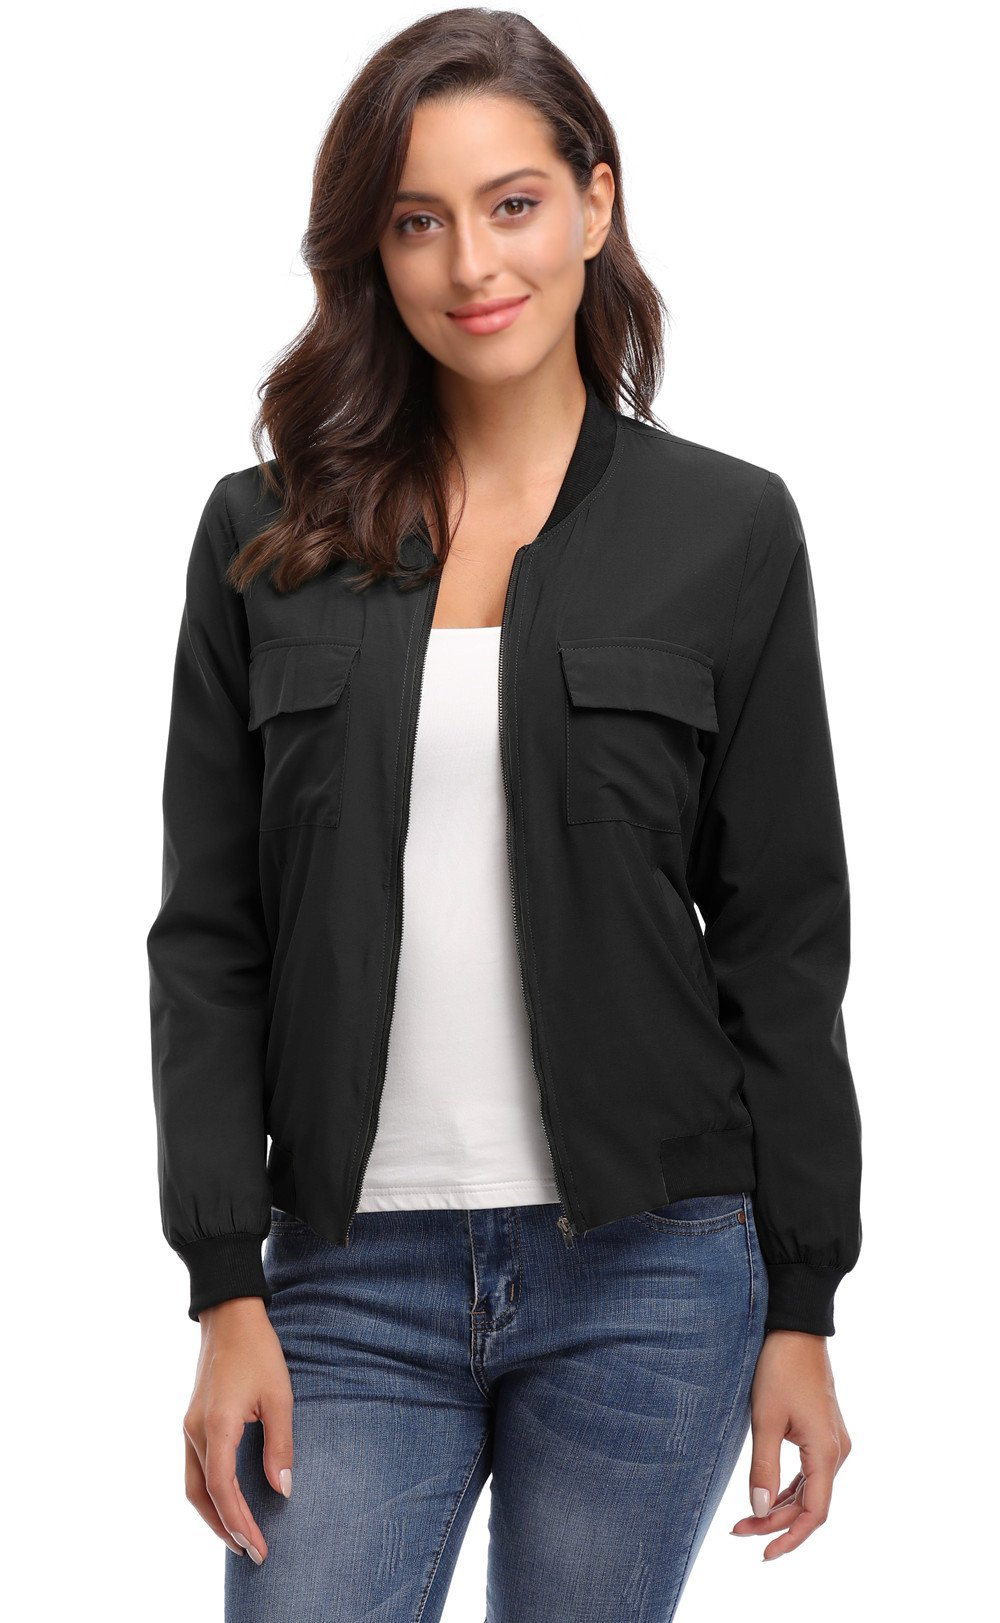 MISS MOLY Women's with Lining Zip Up Lightweight Coat Rib Collar Multi-Pockets Bomber Jacket